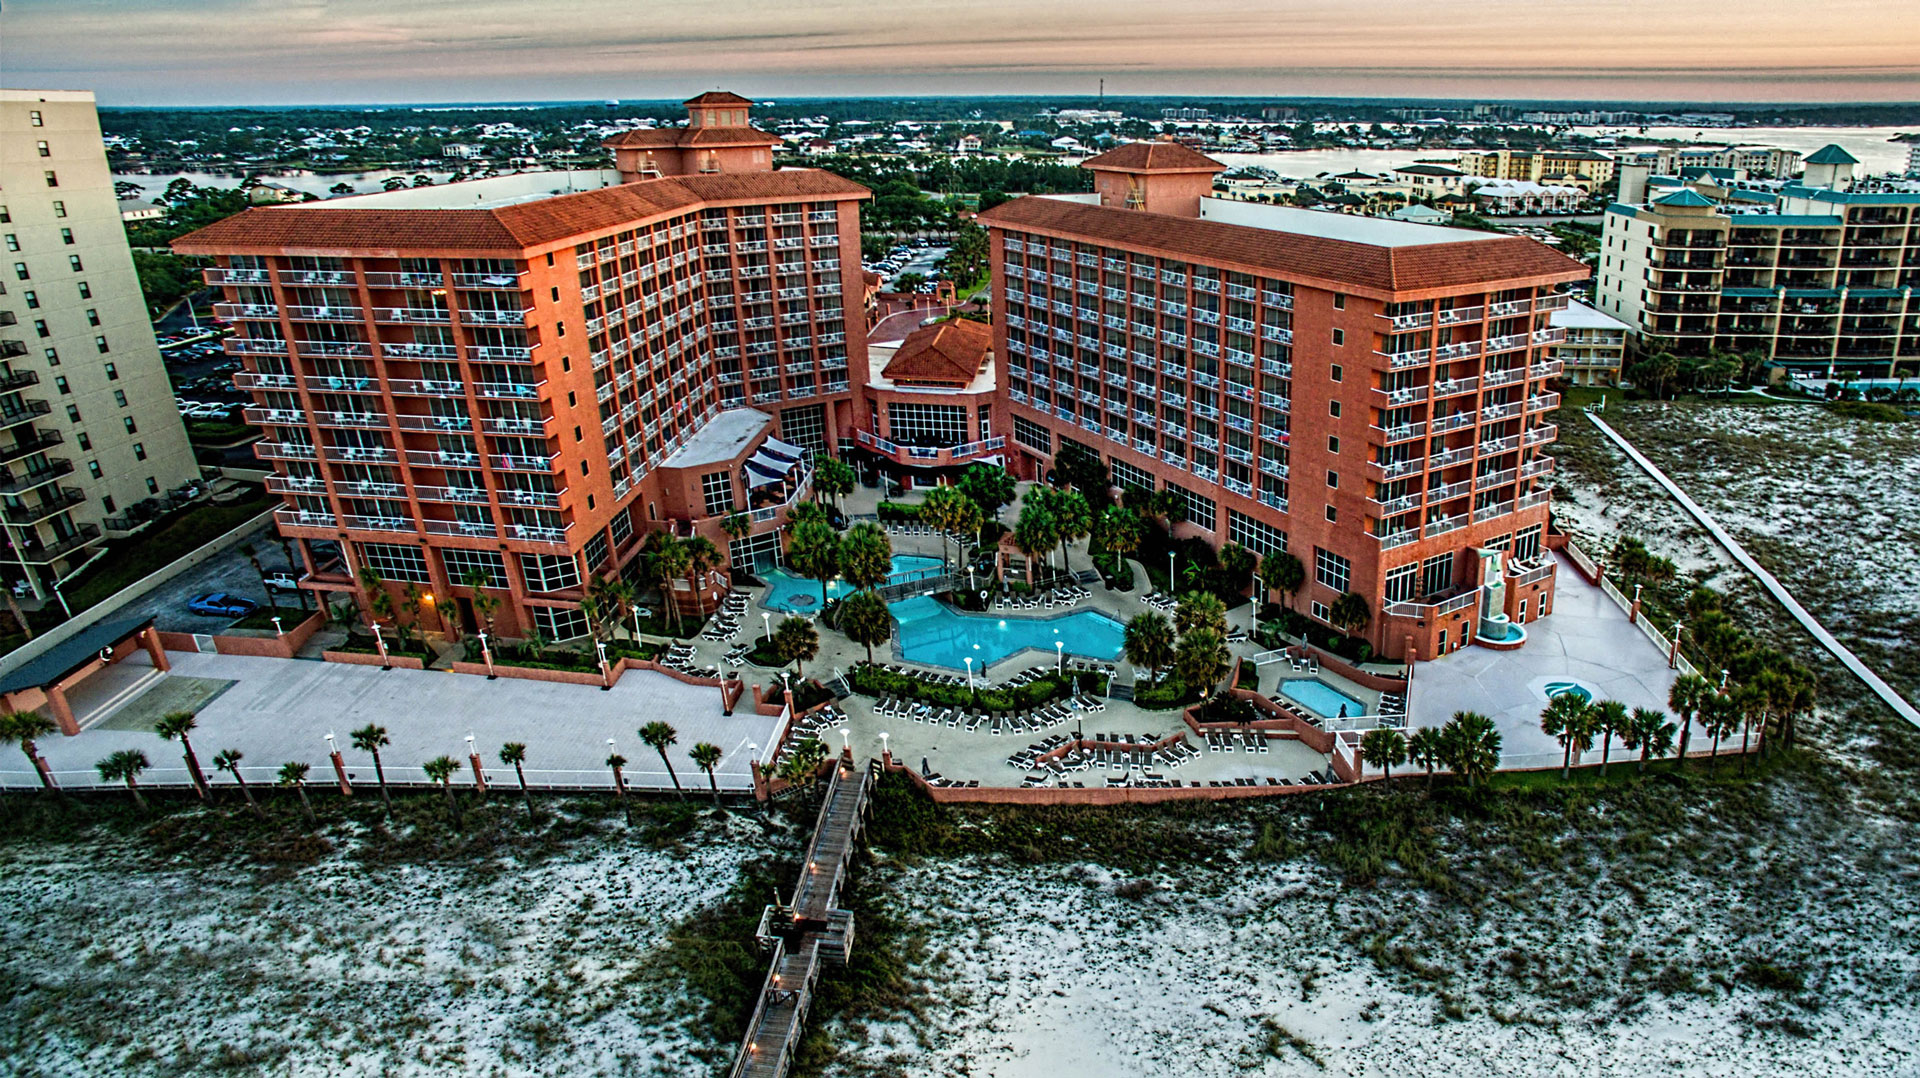 perdido beach resort from above